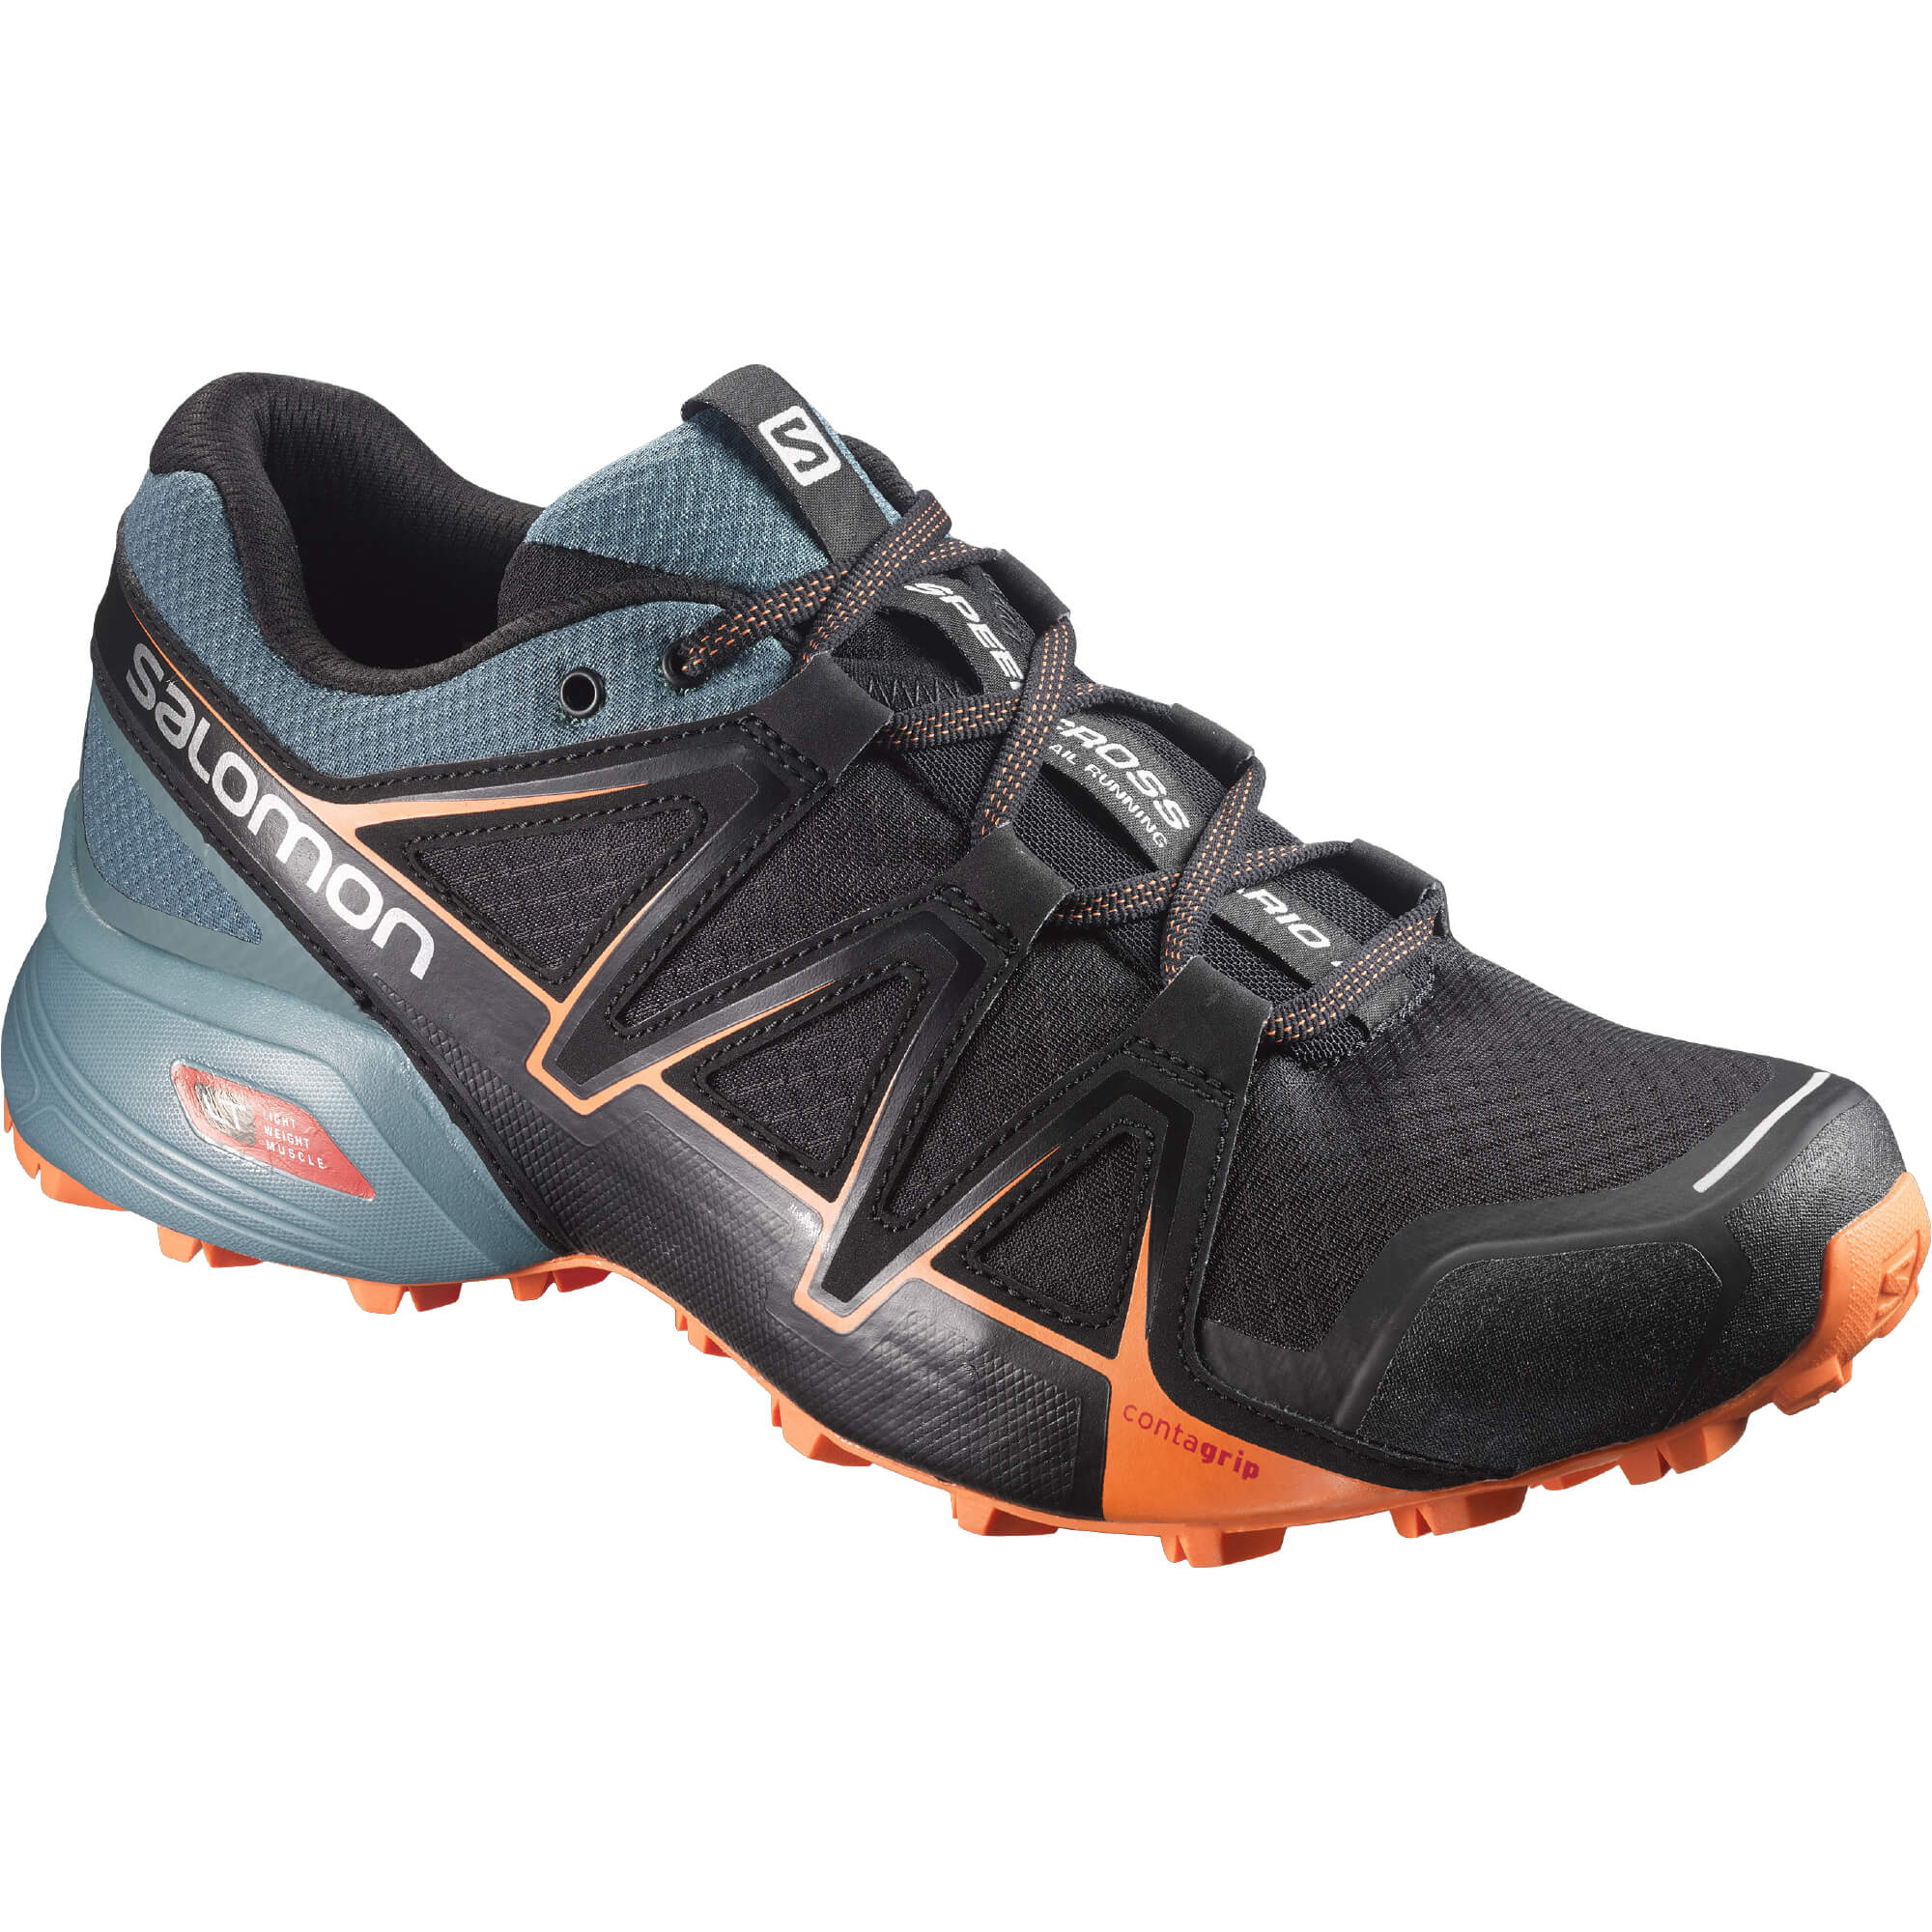 Salomon Speedcross Vario 2, vel. 43 1/3